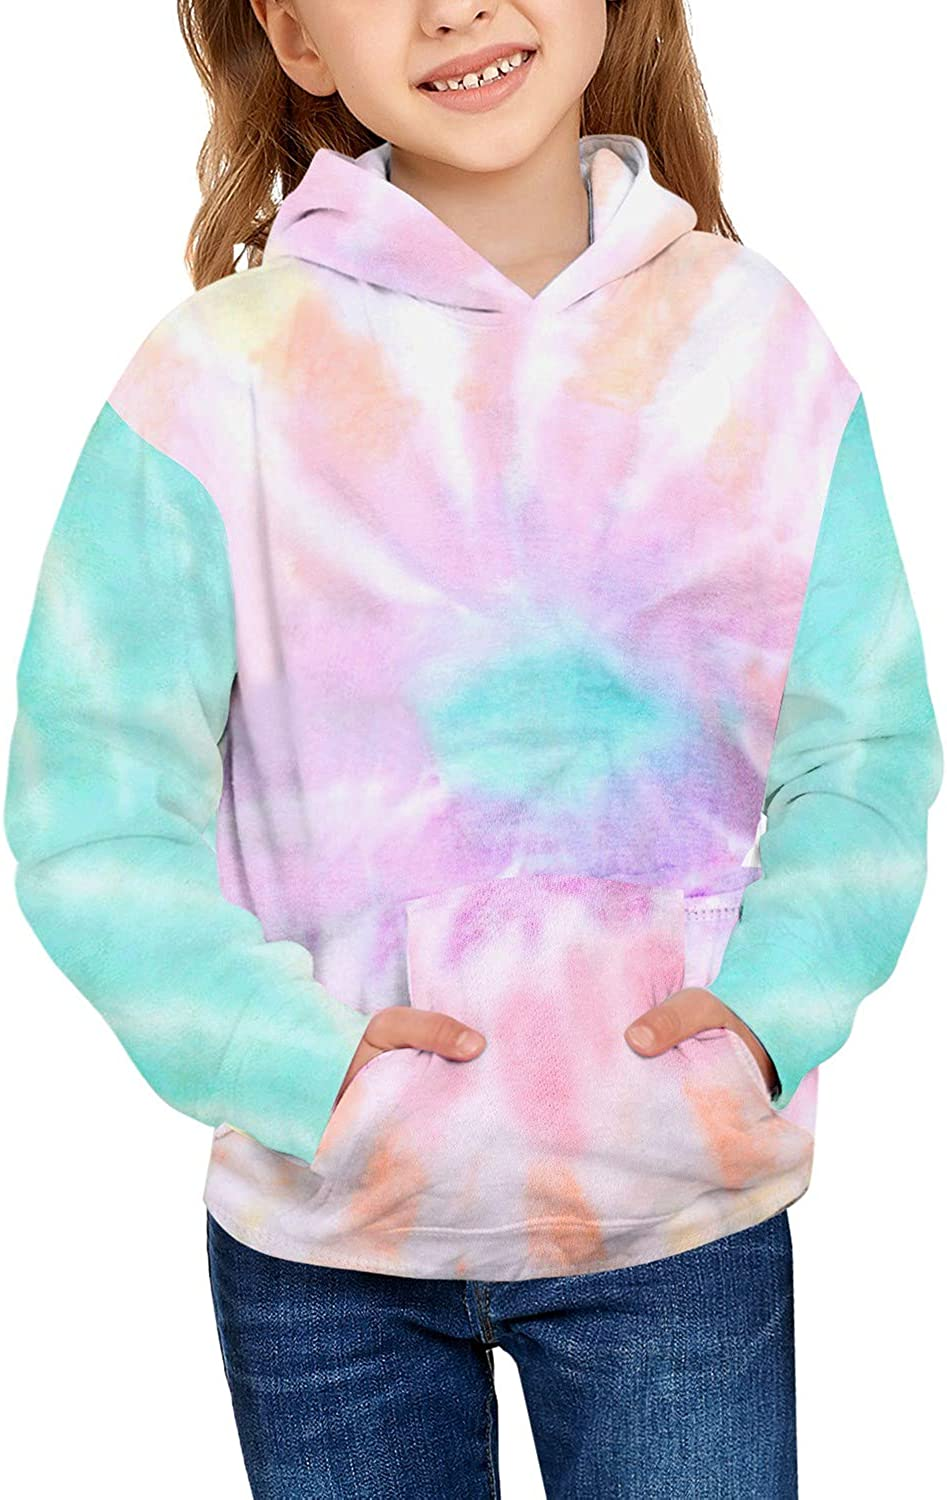 Special price for Max 46% OFF a limited time GRAPENT Girls Tie Dye Print Sweatshirt Sleeve Hoodie Active Long